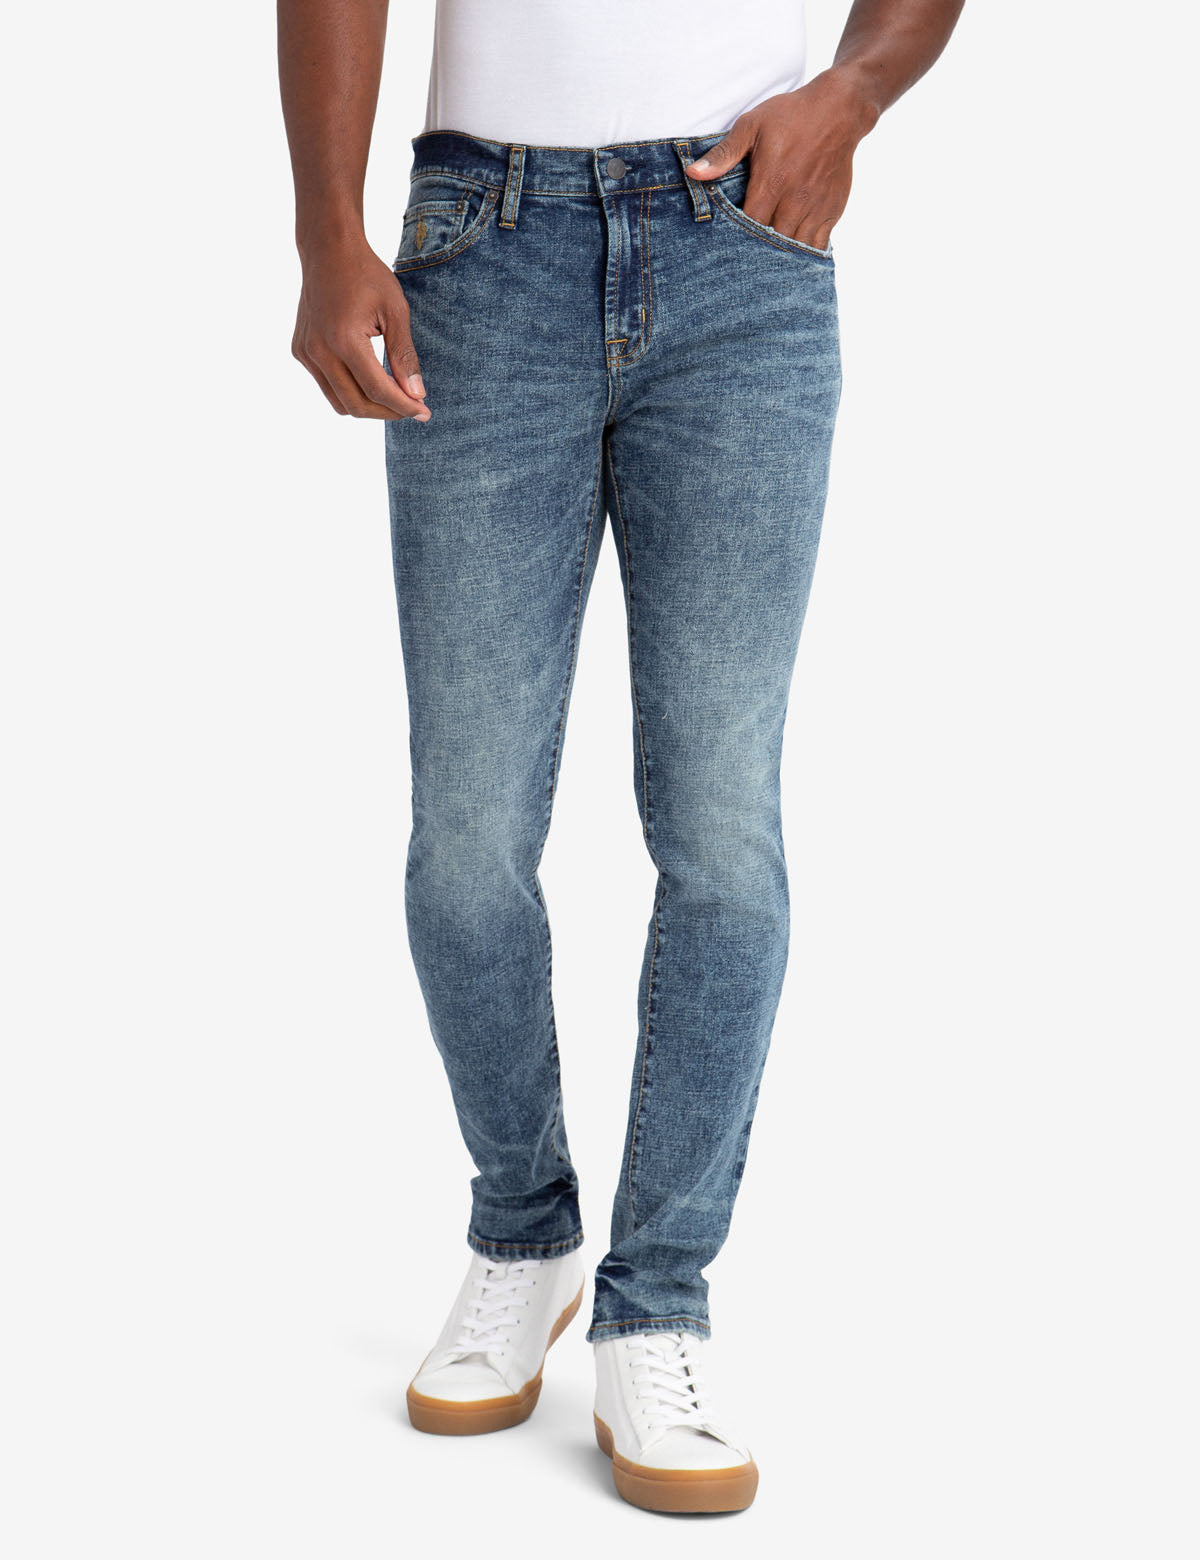 U.S. Polo Assn. - Mens Skinny Fit Stretch Jeans